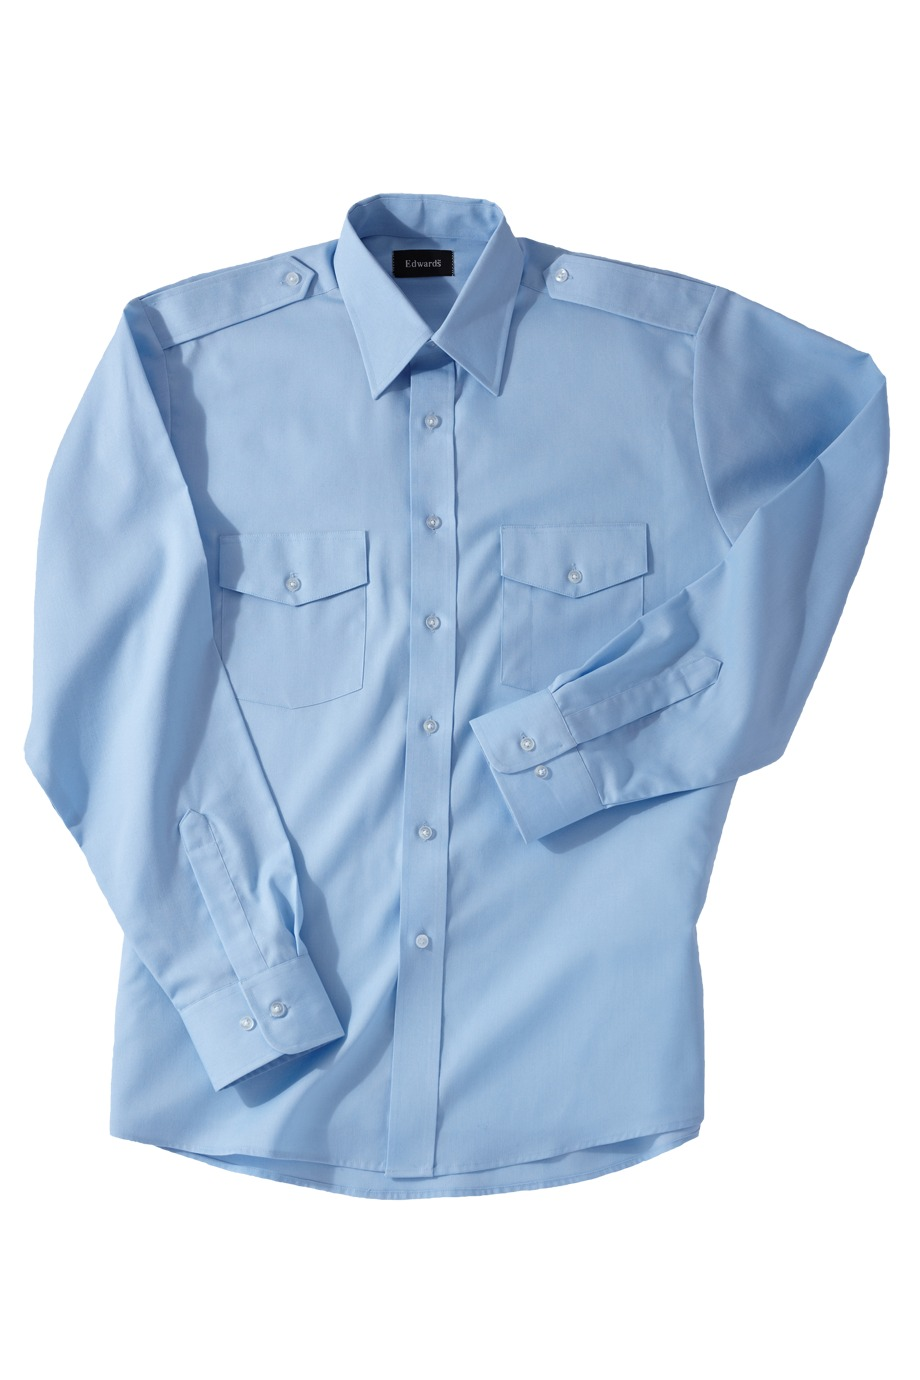 Edwards Garment 1262 - Men's Long Sleeve Navigator Shirt